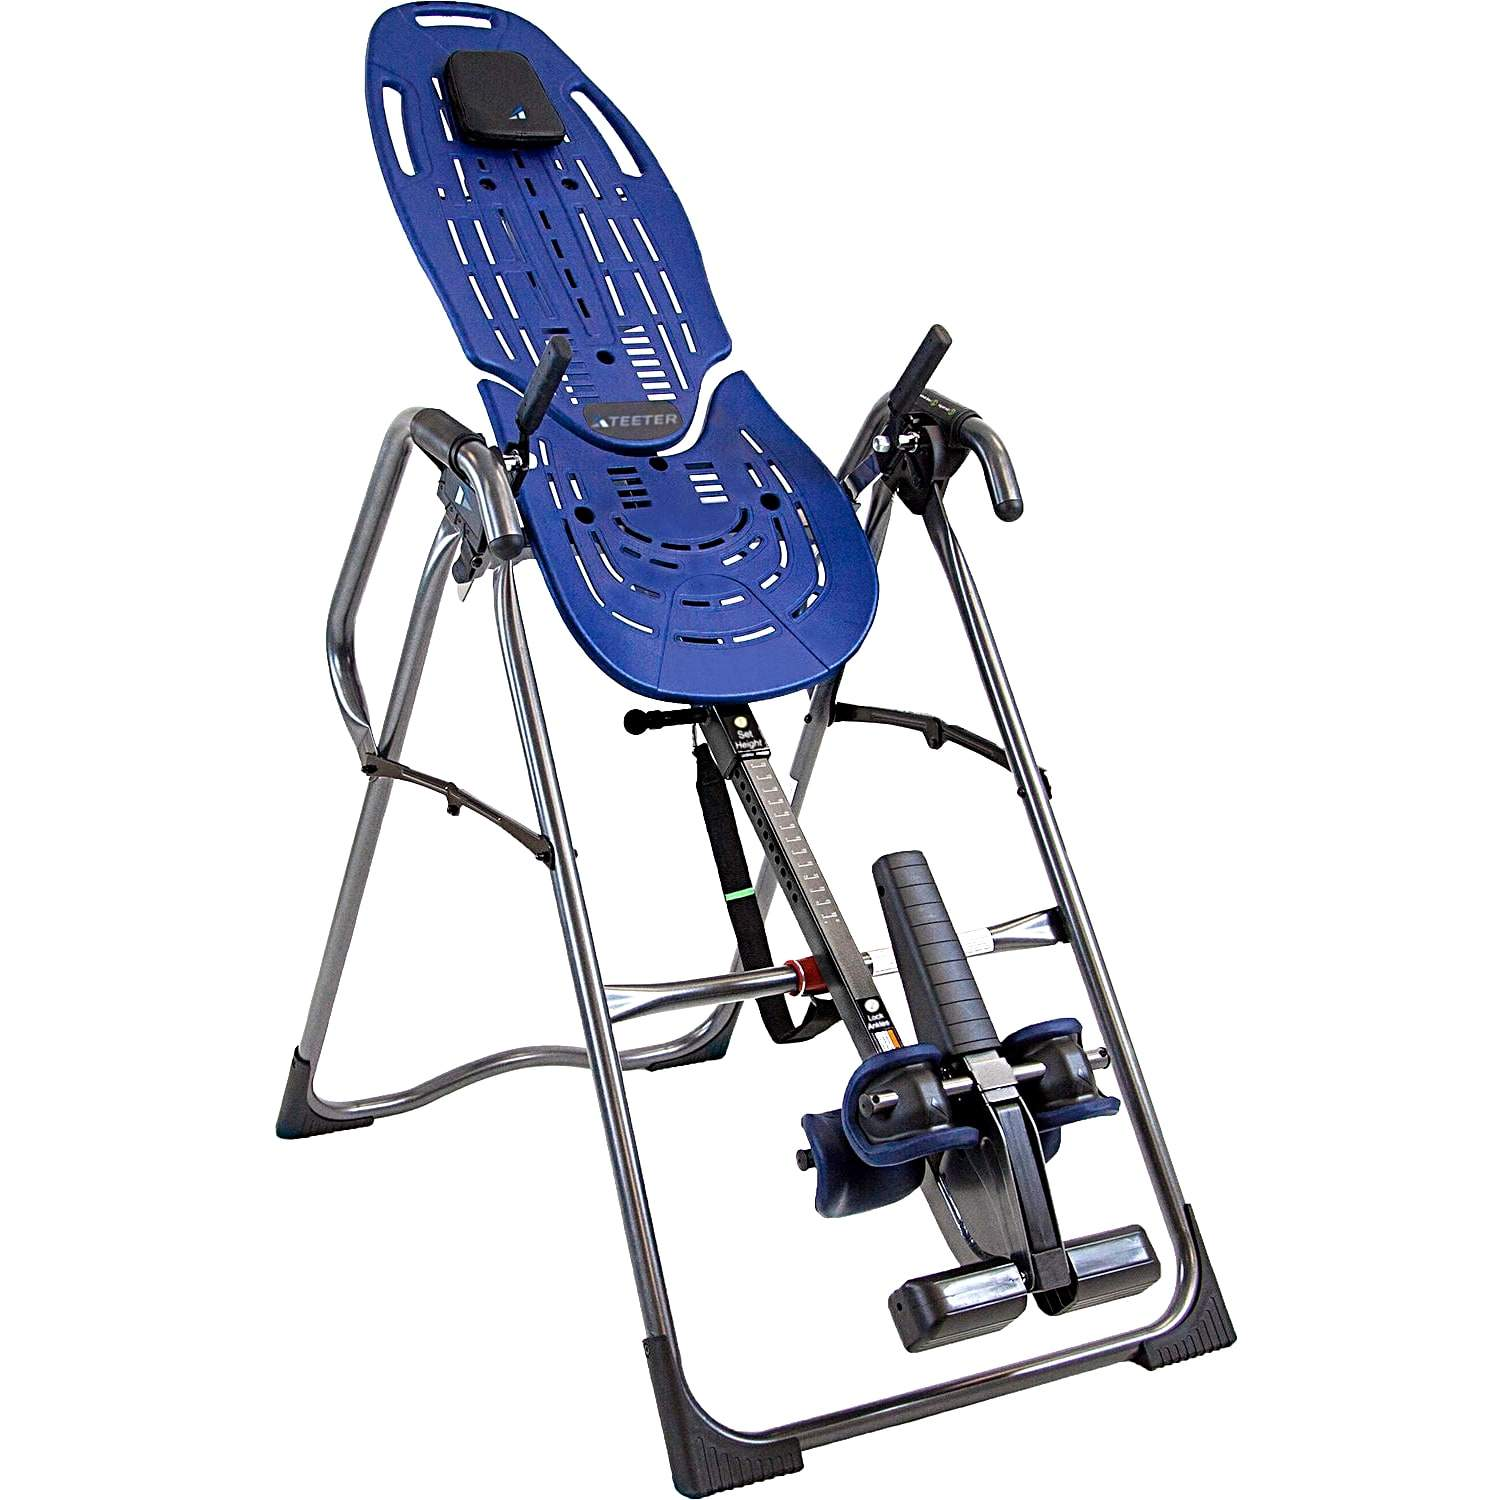 Teeter EP-960 Inversion Table - Body Massage Shop Inversion Table Spine